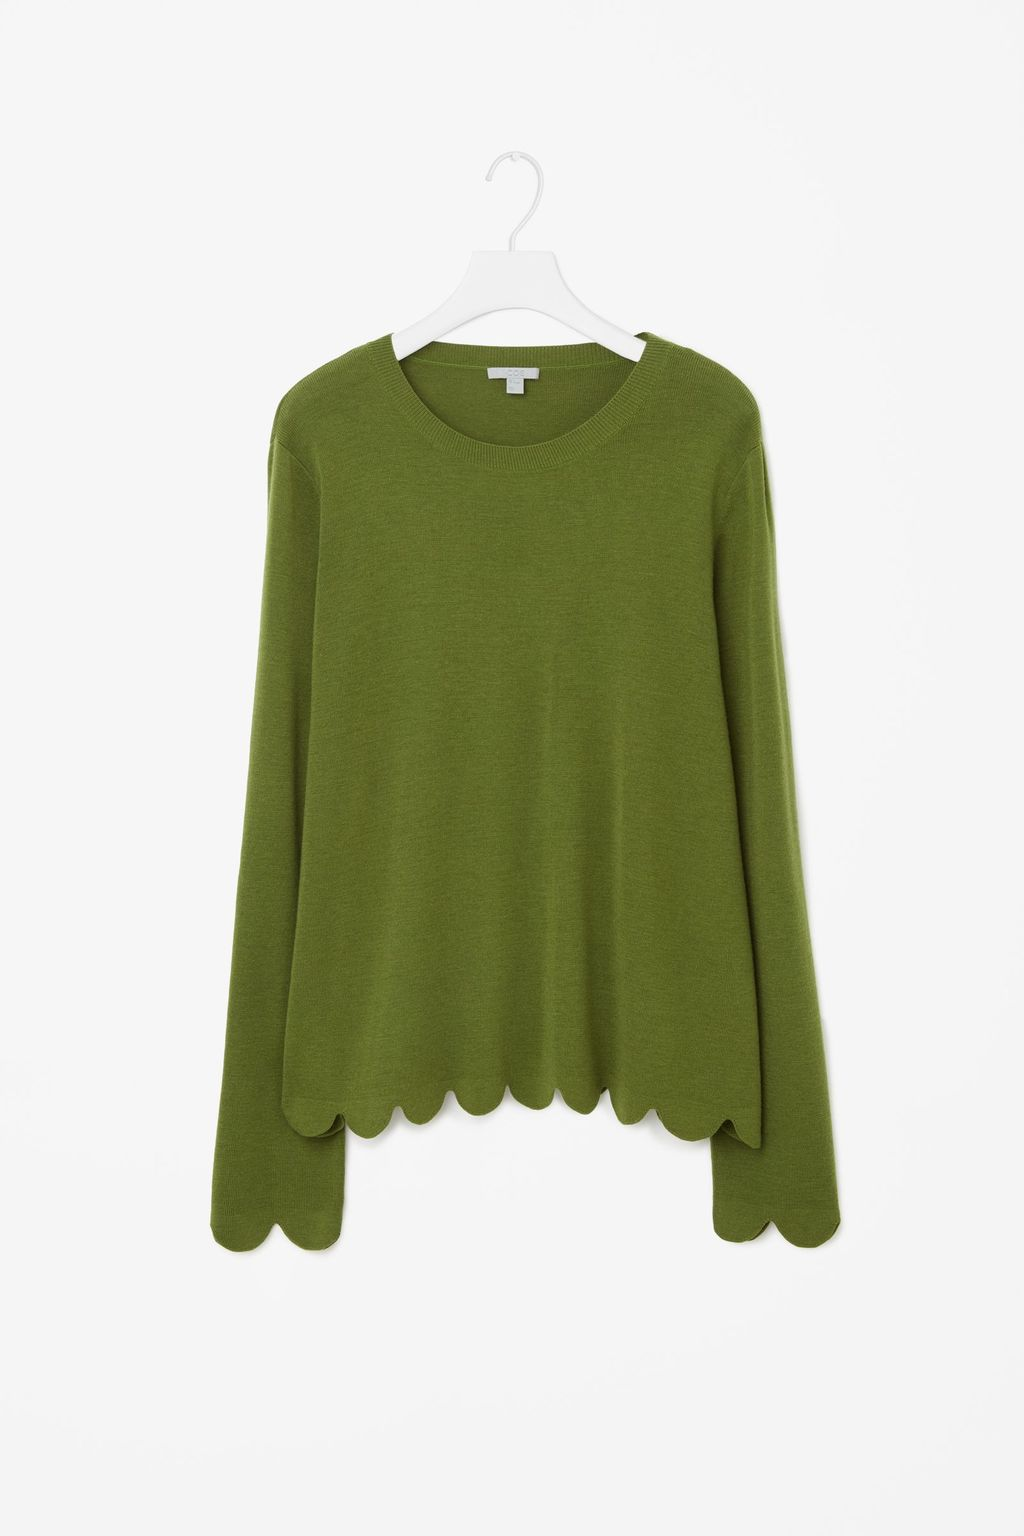 Scalloped Merino Wool Jumper - neckline: round neck; pattern: plain; style: standard; predominant colour: dark green; occasions: casual, creative work; length: standard; fibres: wool - 100%; fit: standard fit; sleeve length: long sleeve; sleeve style: standard; texture group: knits/crochet; pattern type: knitted - fine stitch; season: a/w 2016; wardrobe: highlight